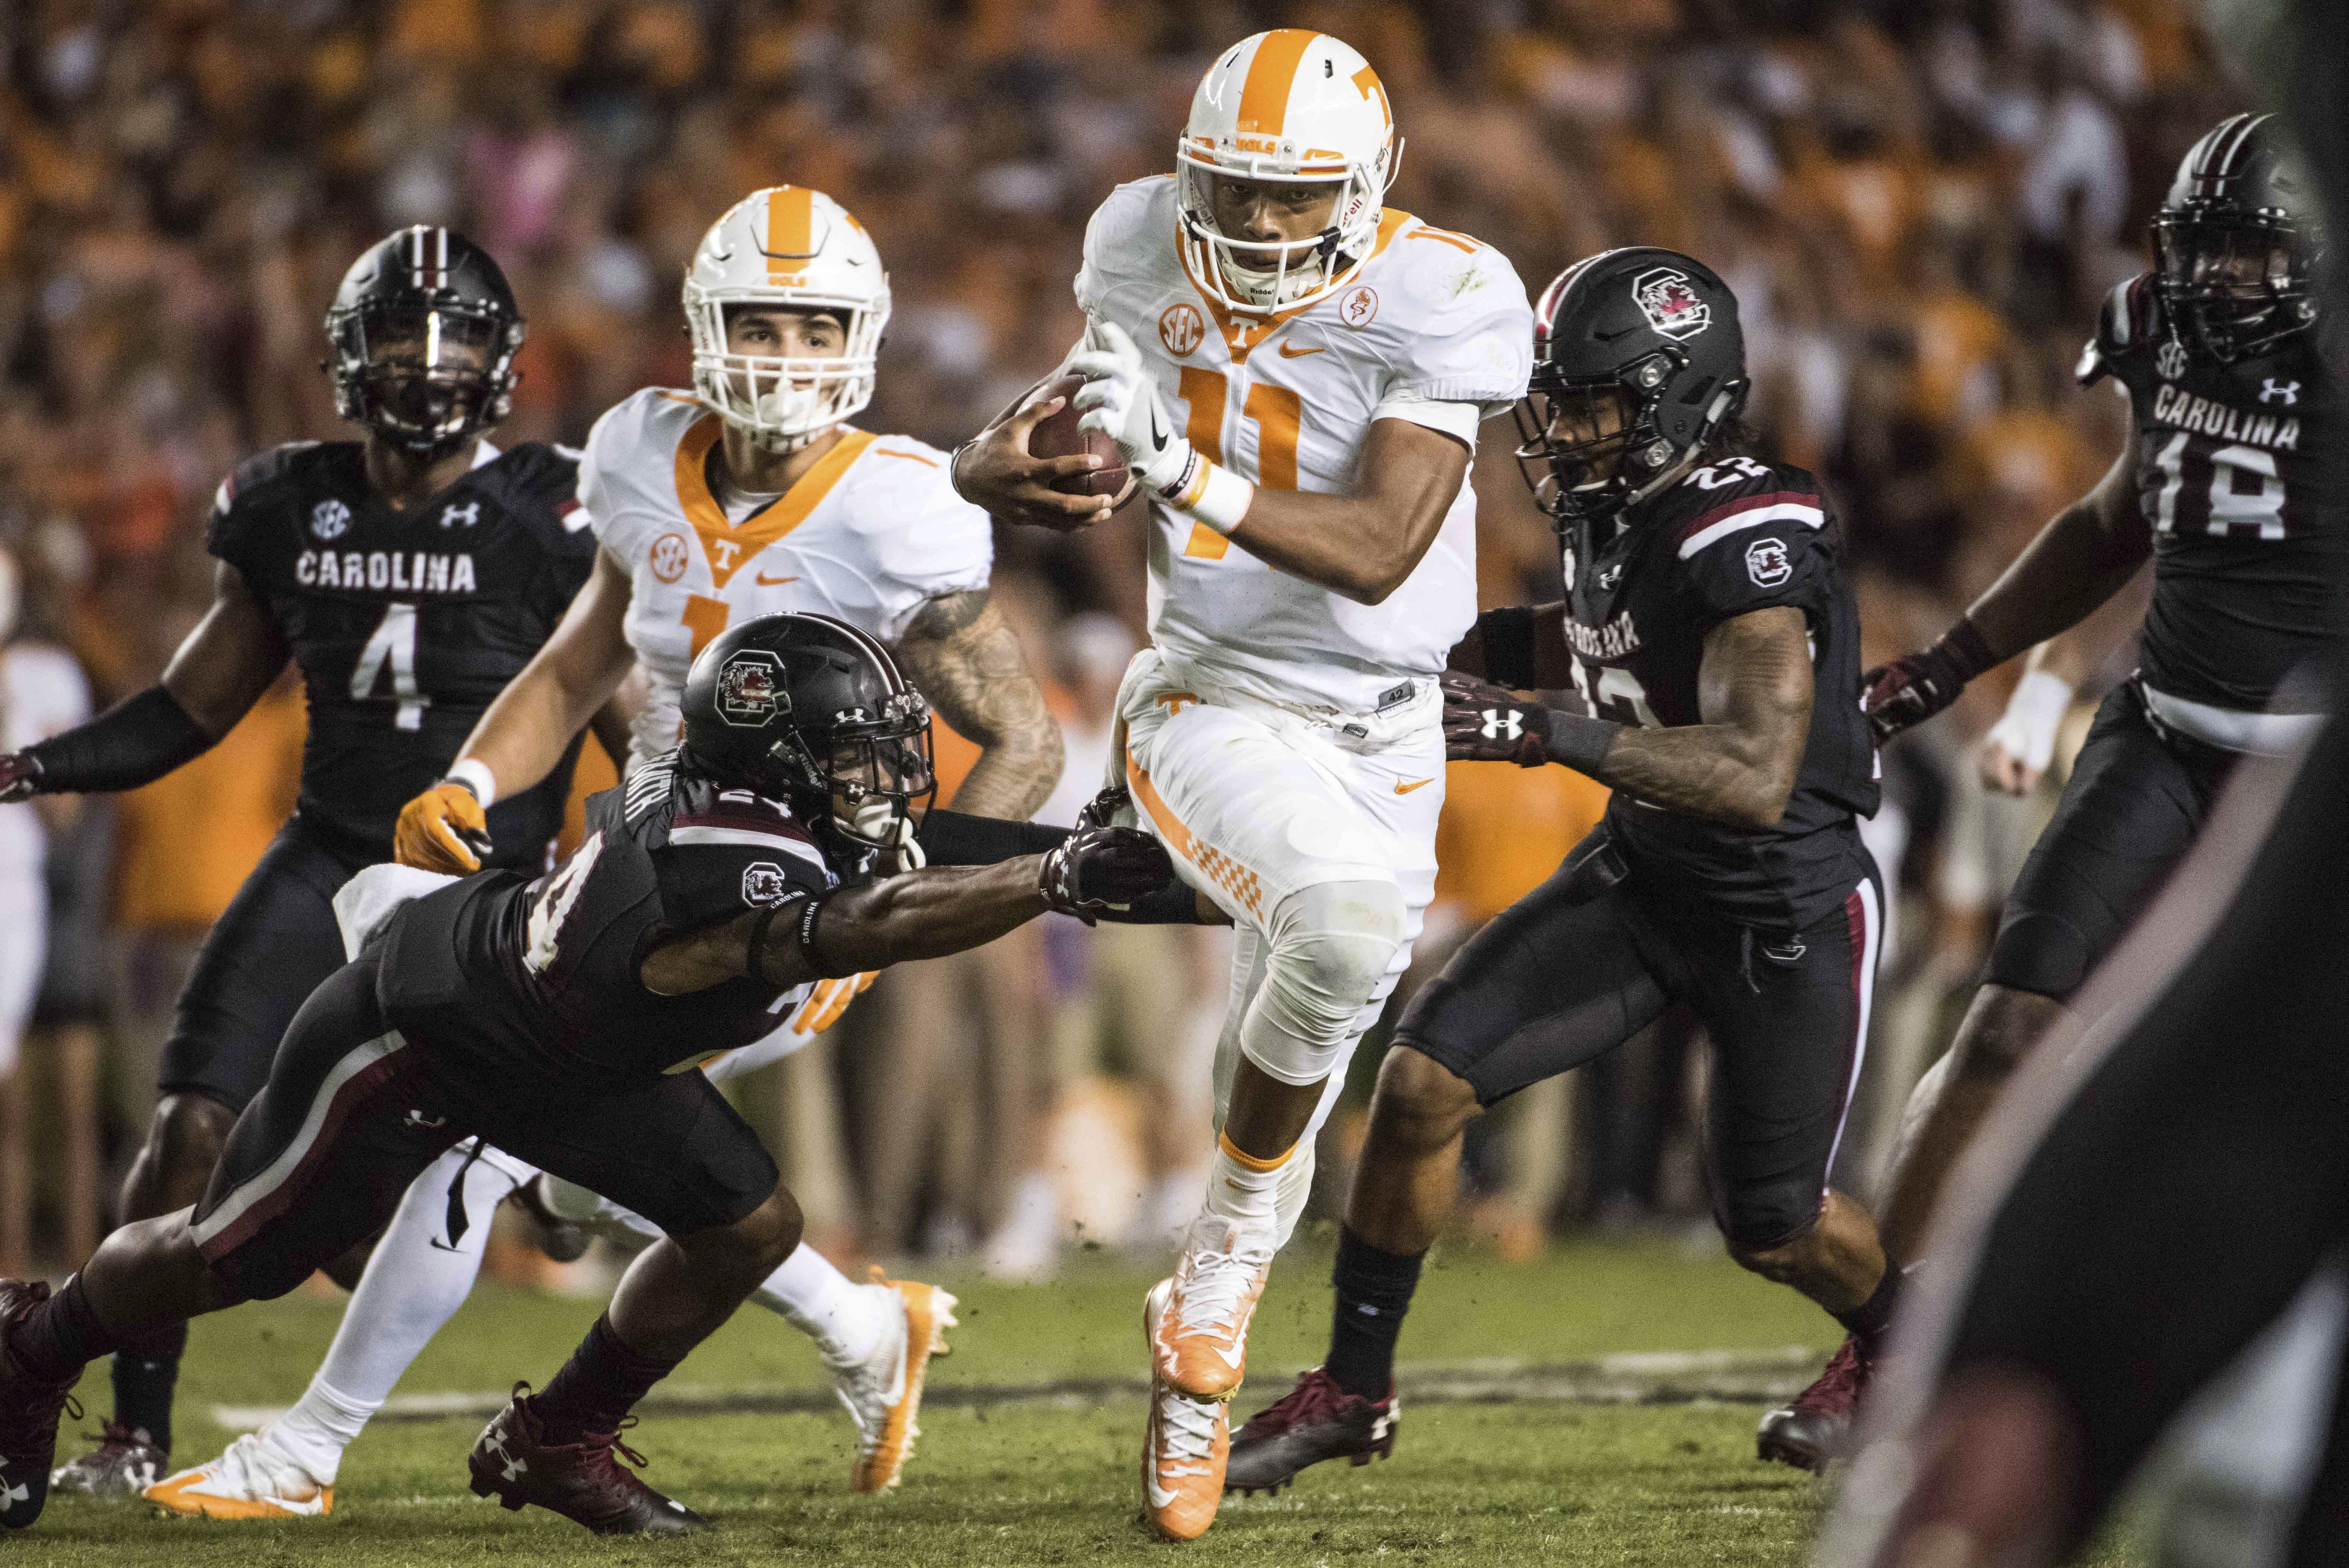 Tennessee quarterback Joshua Dobbs (11) runs the ball against South Carolina defensive back D.J. Smith (24) during the first half of an NCAA college football game Saturday, Oct. 29, 2016, in Columbia, S.C. (AP Photo/Sean Rayford)